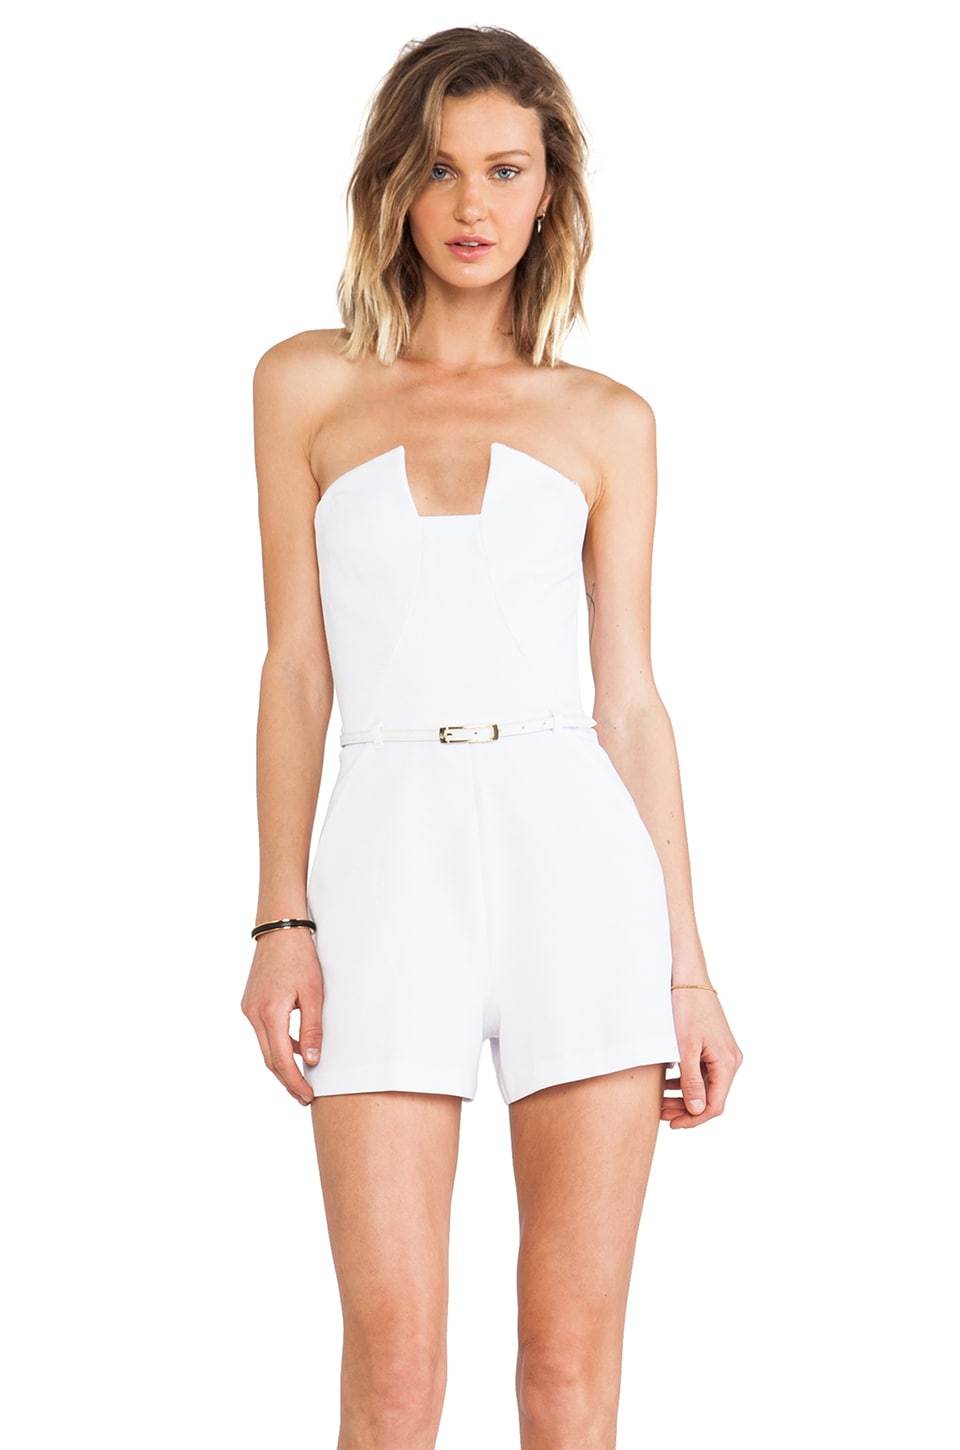 Black Halo x REVOLVE Lena Romper in White